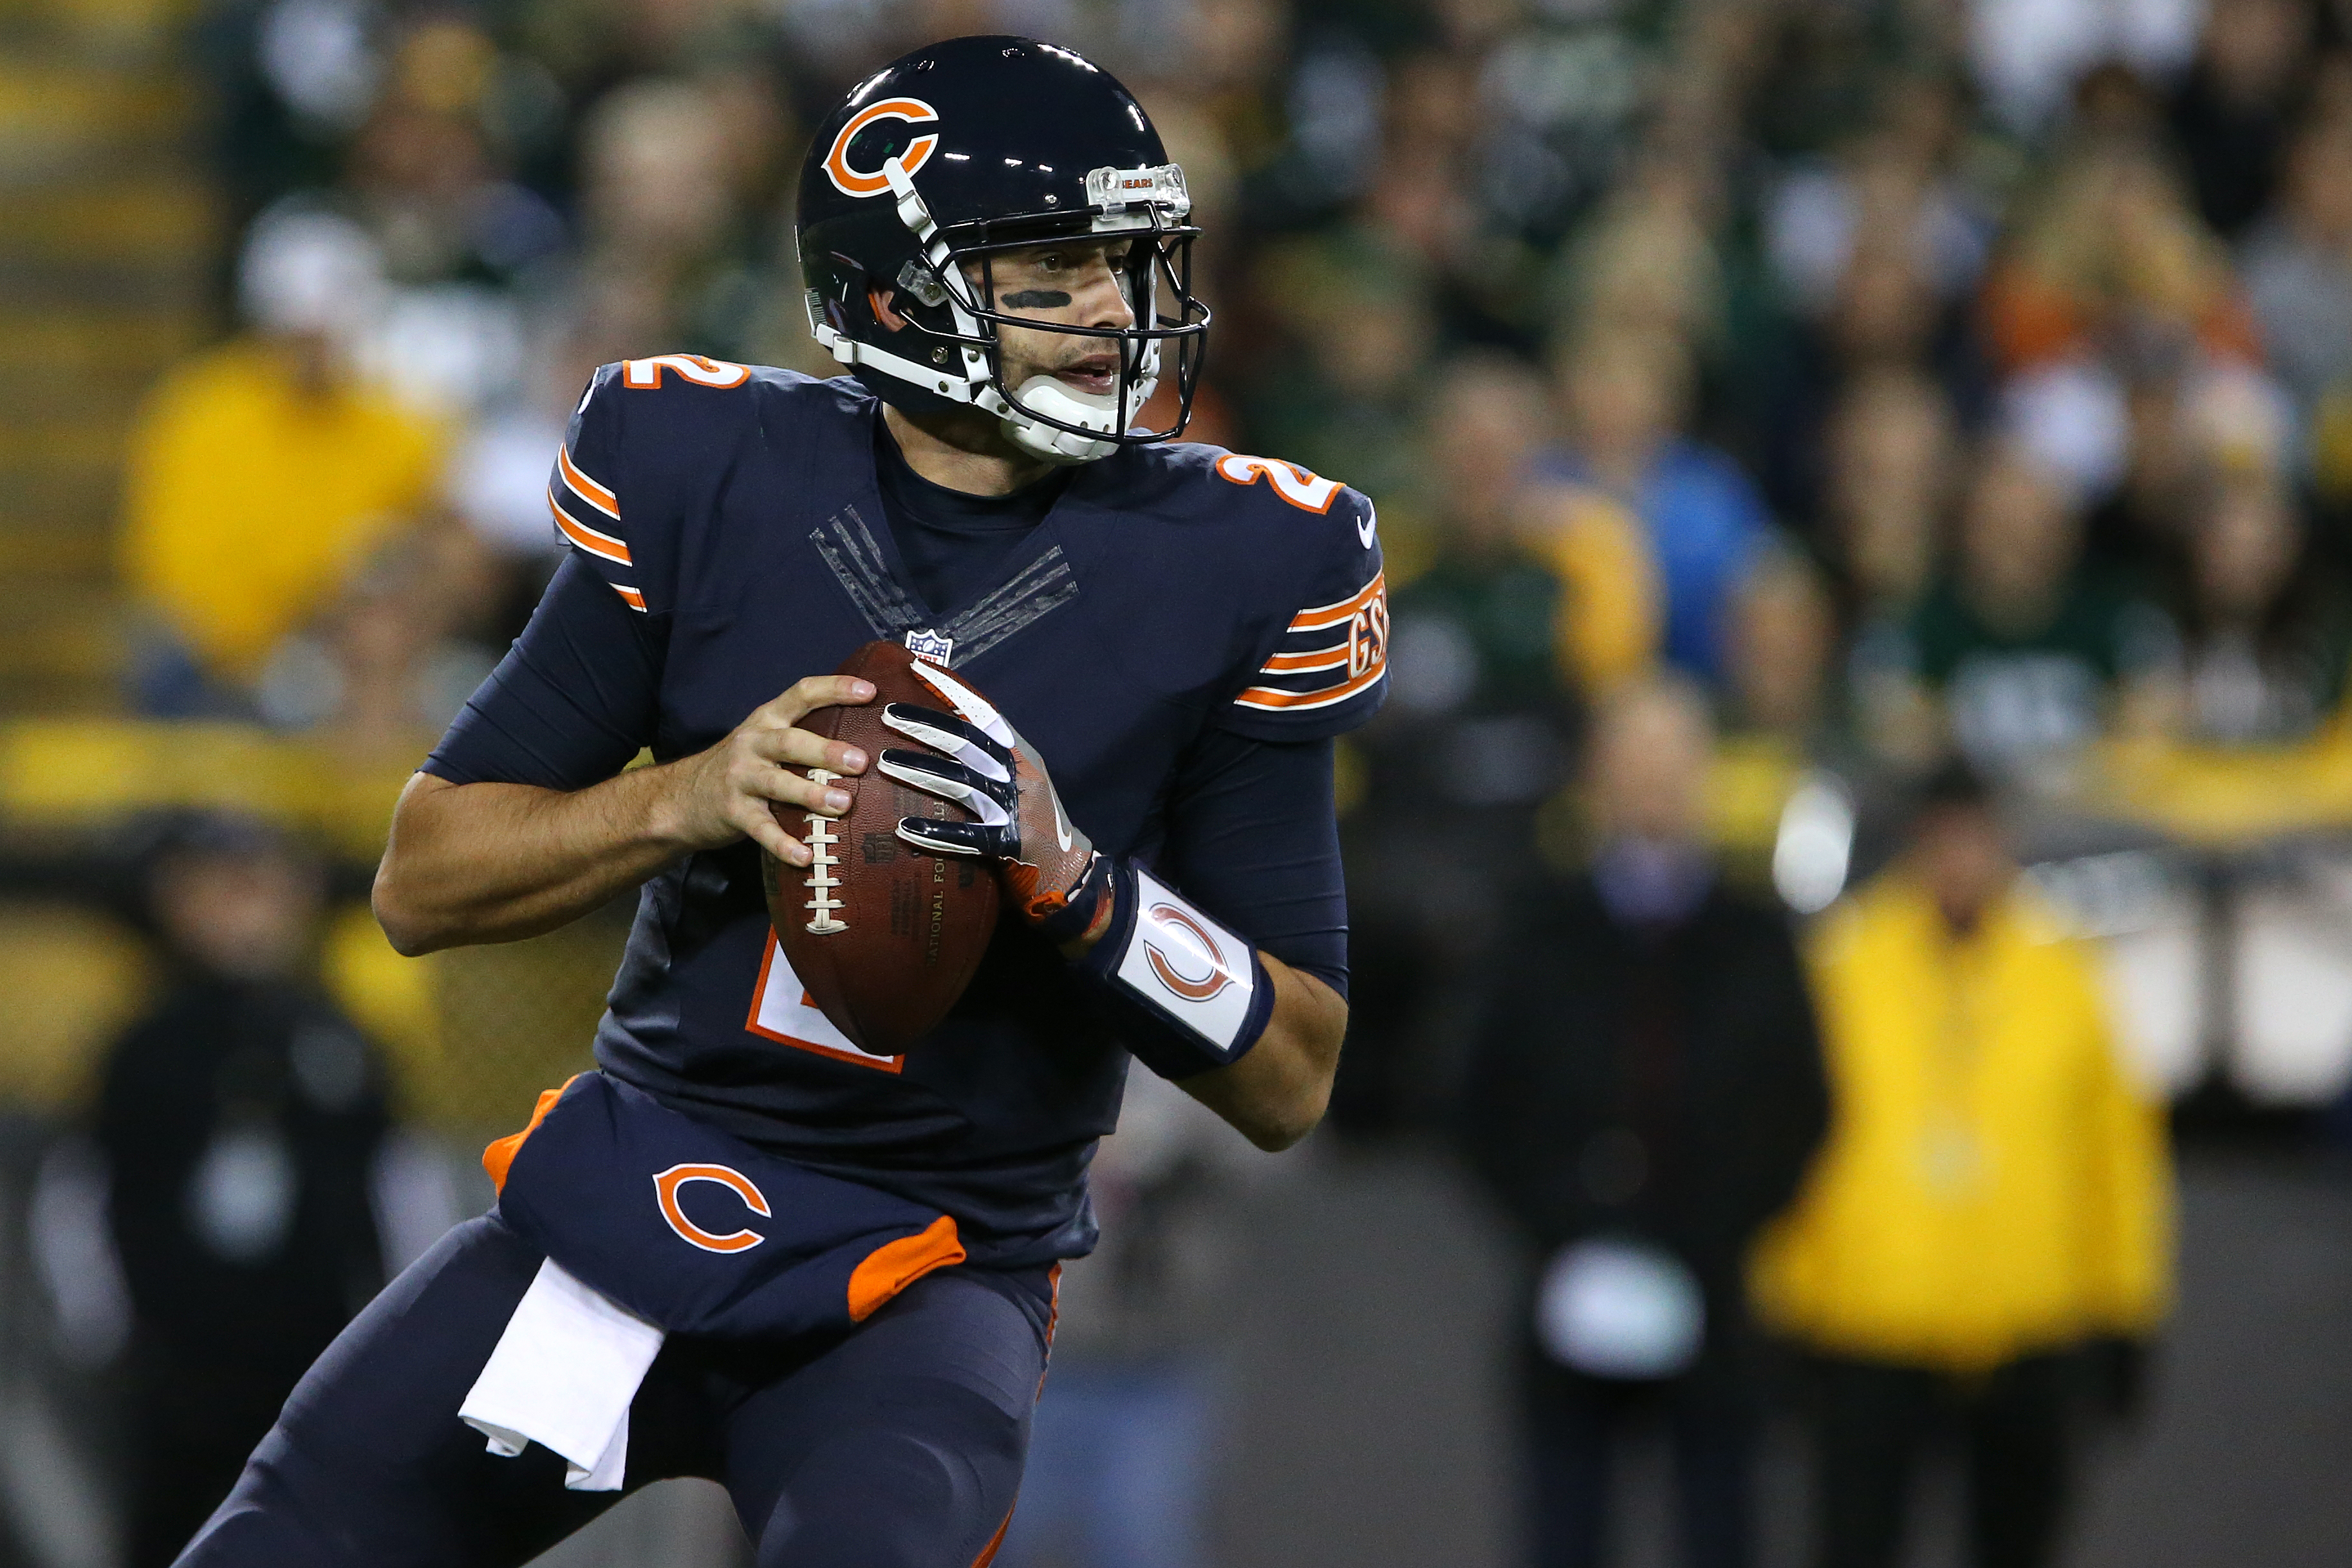 Chicago Bears: Why was Brian Hoyer not re-signed this off-season?